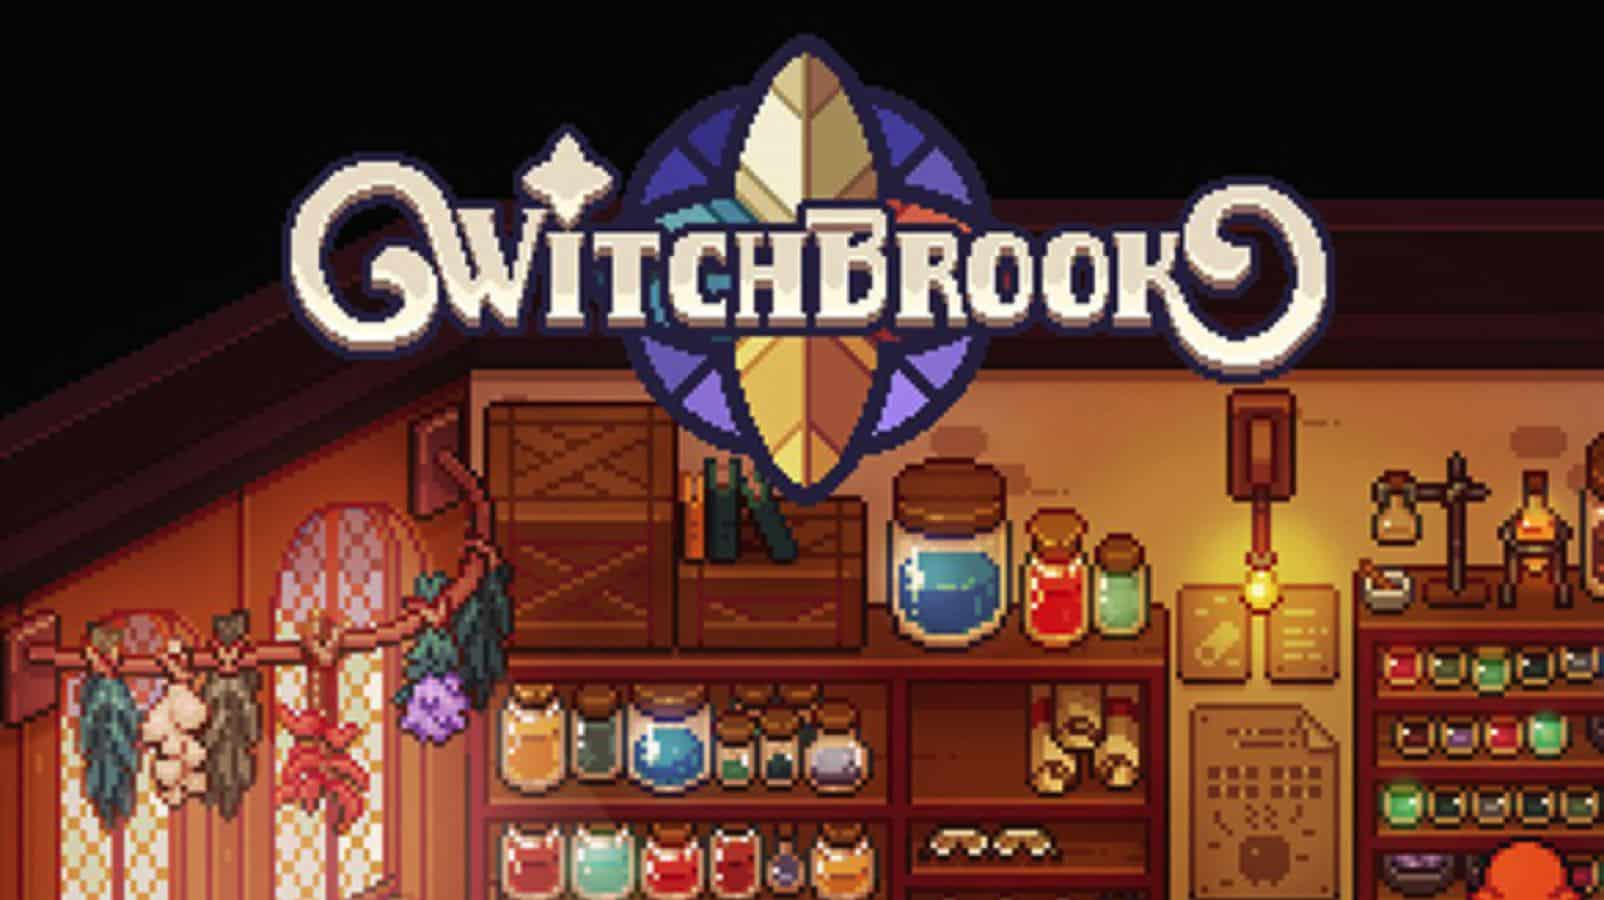 witchbrook game logo